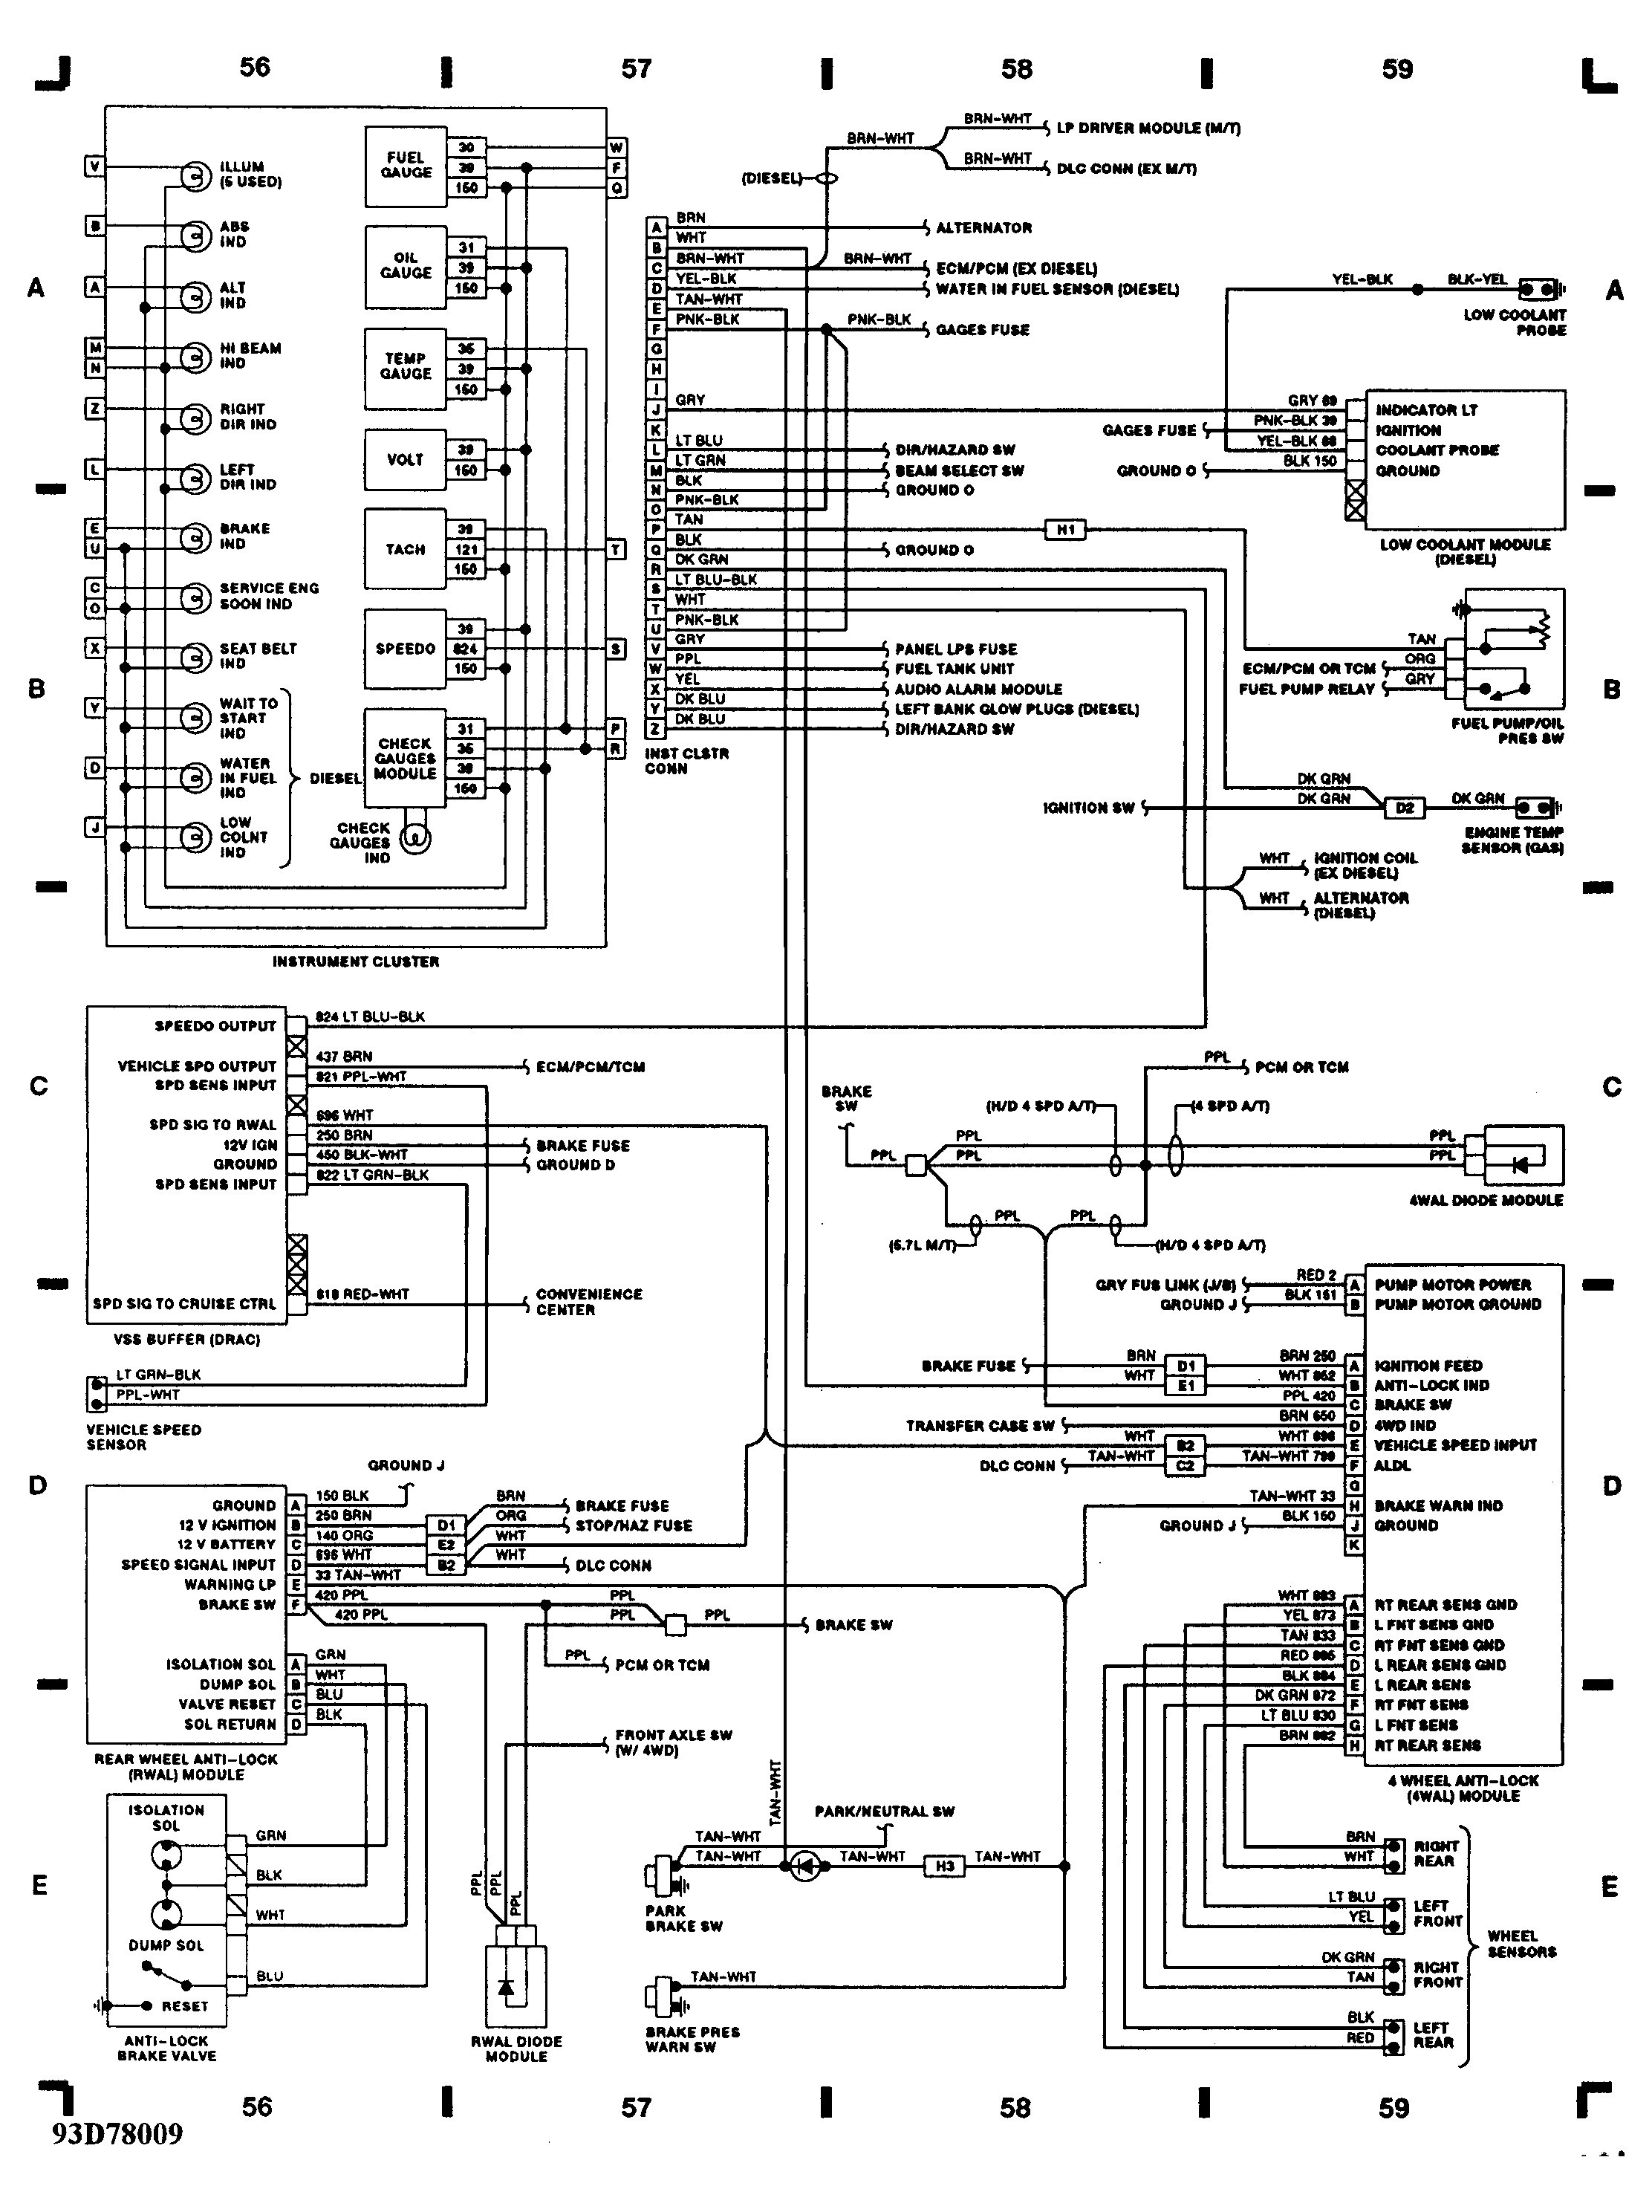 1997 Silverado Wiring Schematic - Ford Thunderbird Fuse Box Location for  Wiring Diagram SchematicsWiring Diagram Schematics